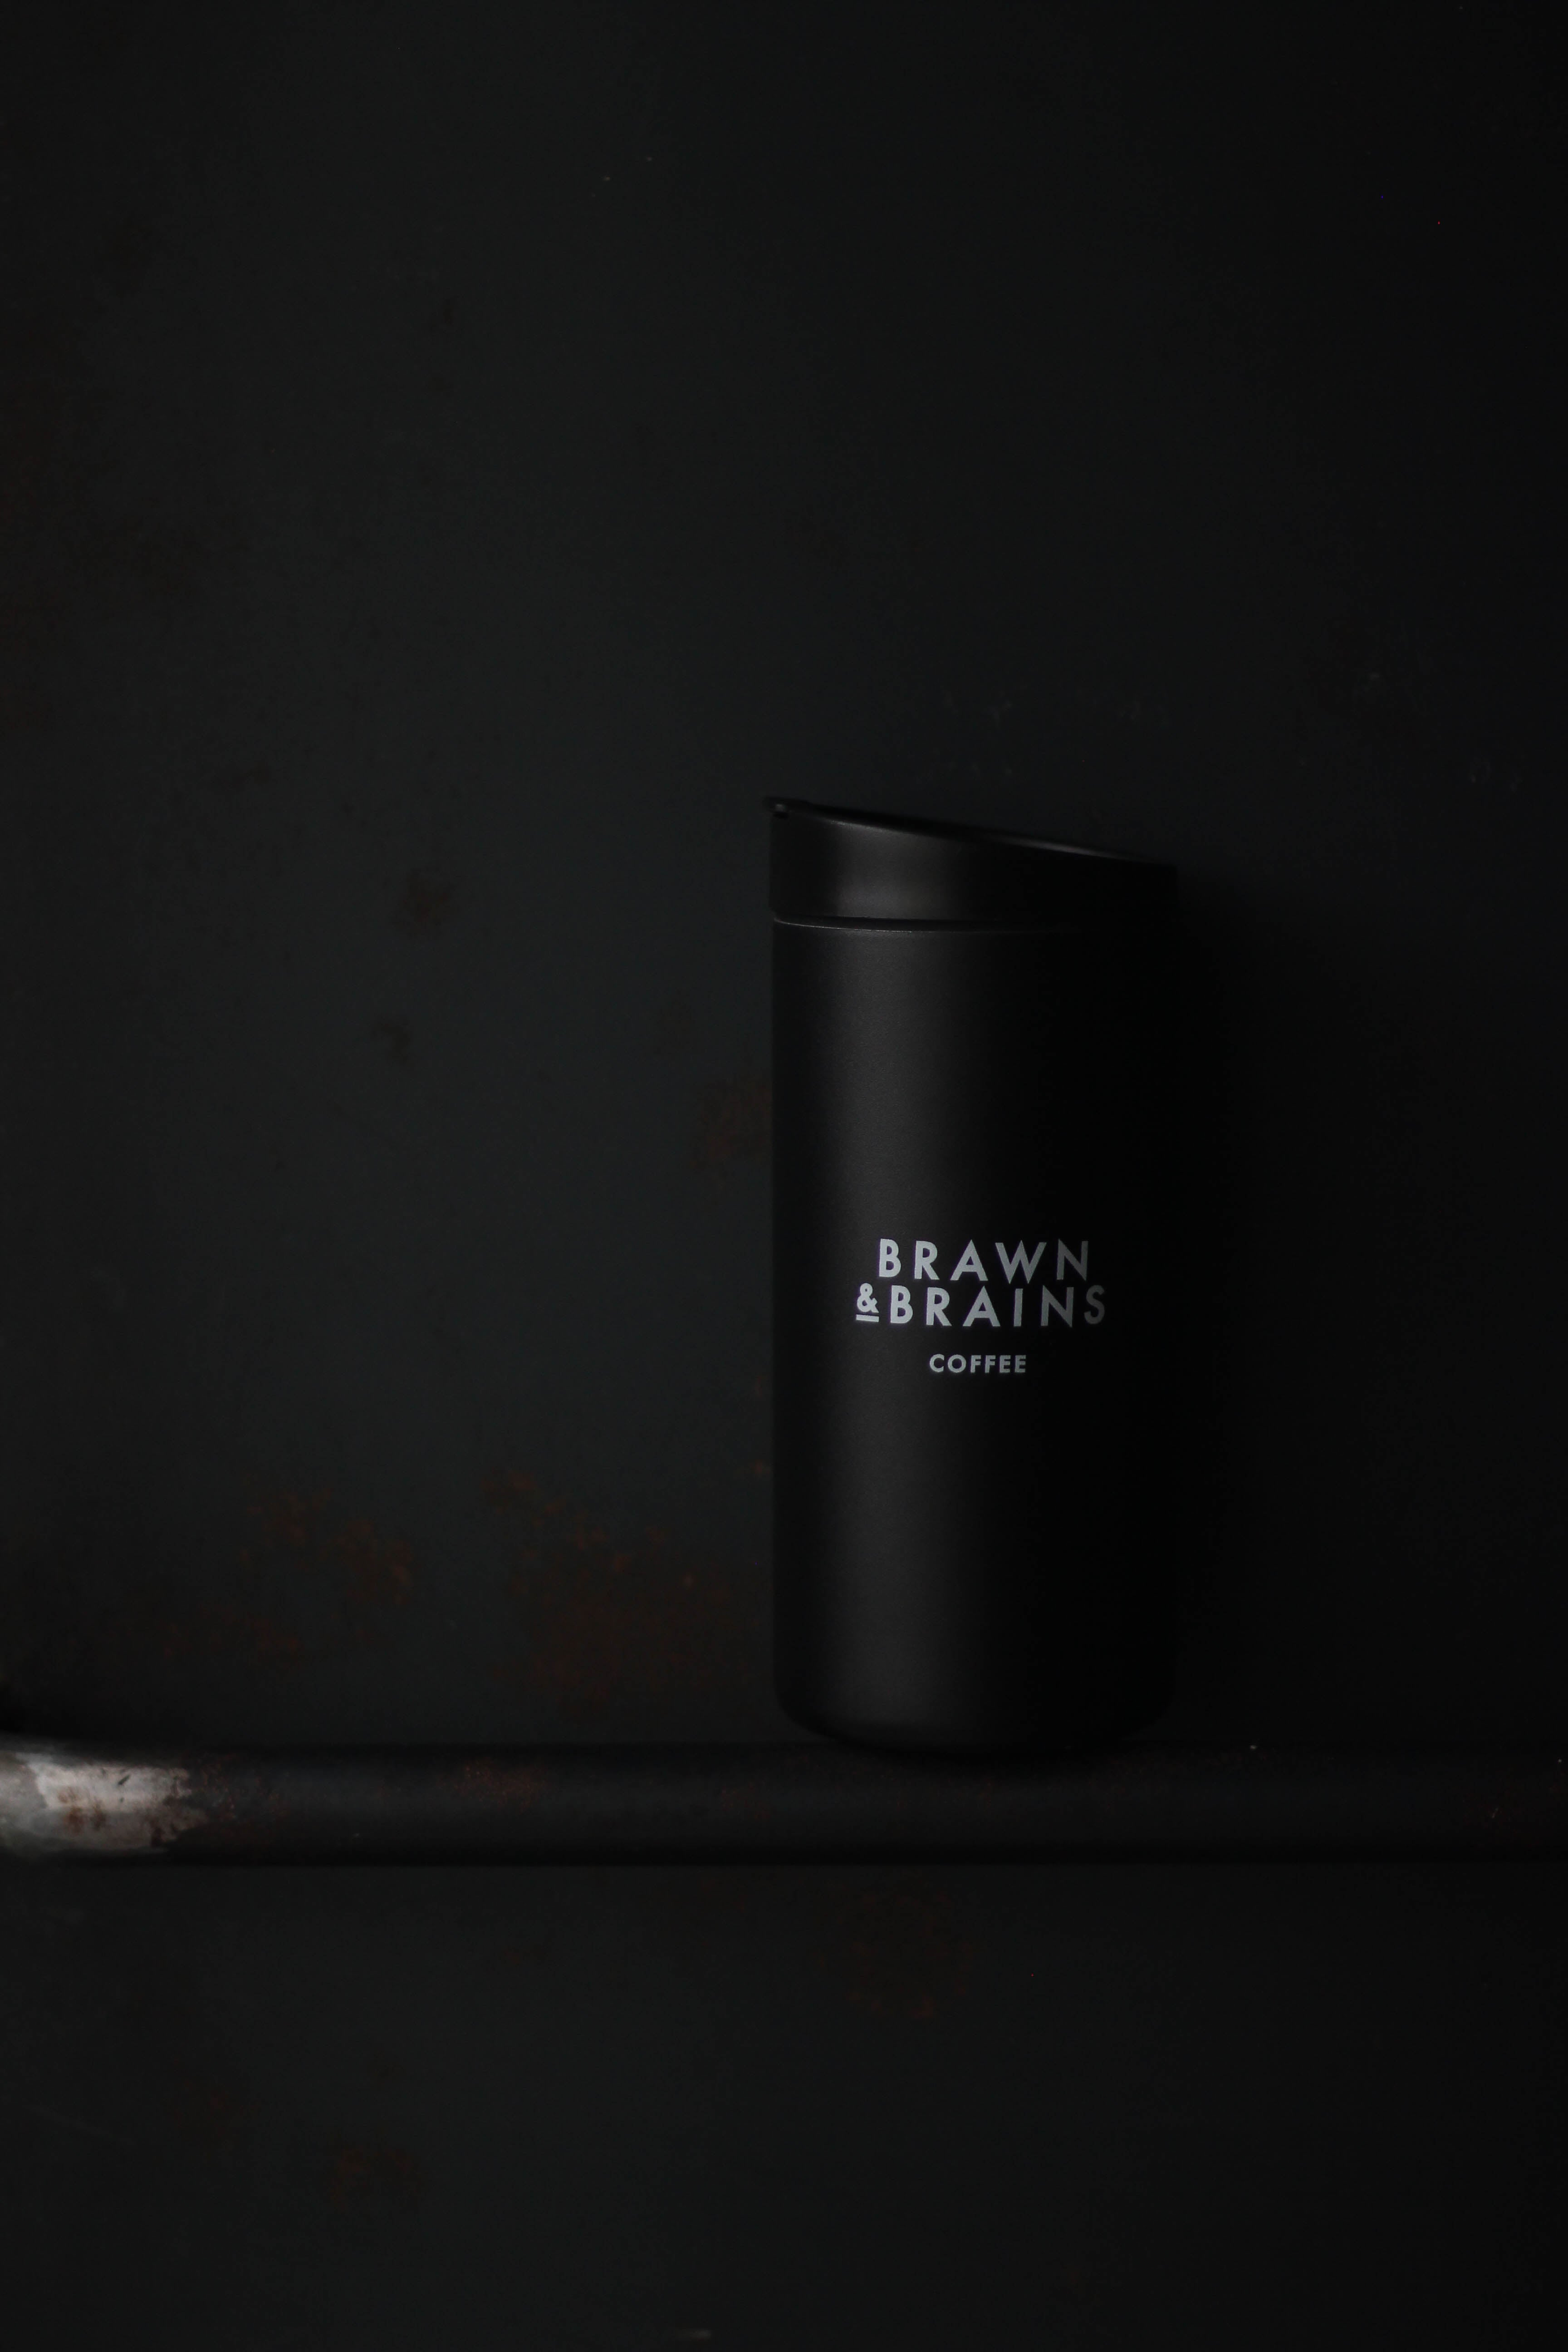 Brawn & brains coffee merchandise, miir black tumbler